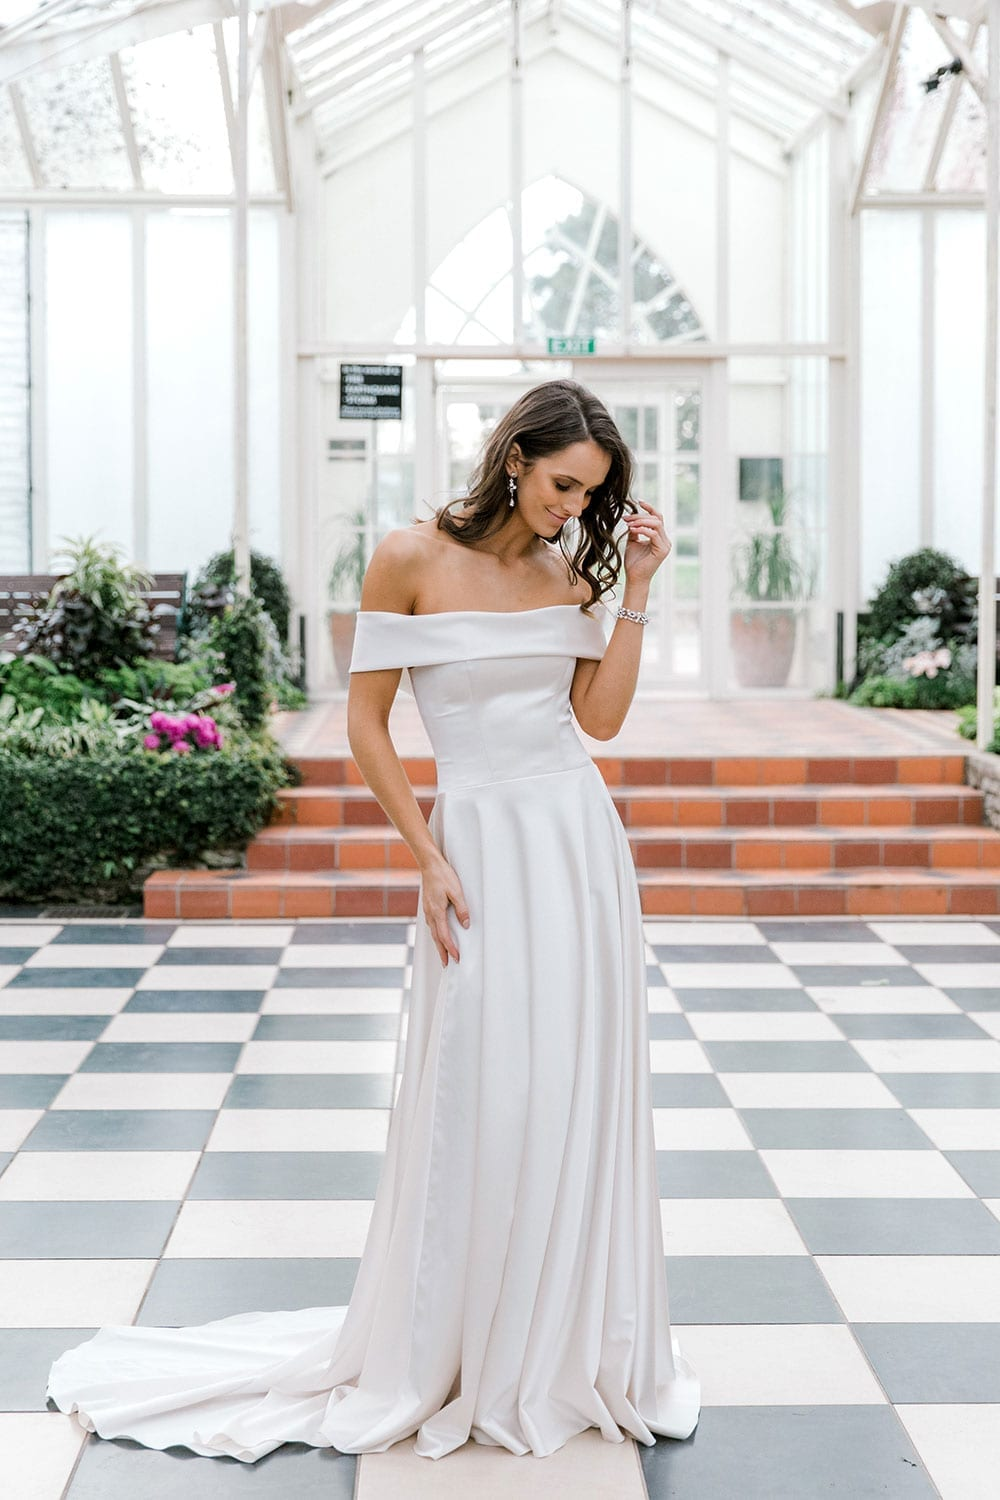 Model wearing Vinka Design Deor Wedding Dress, an Off-Shoulder Satin Wedding Gown portrait inside botanical garden greenhouse